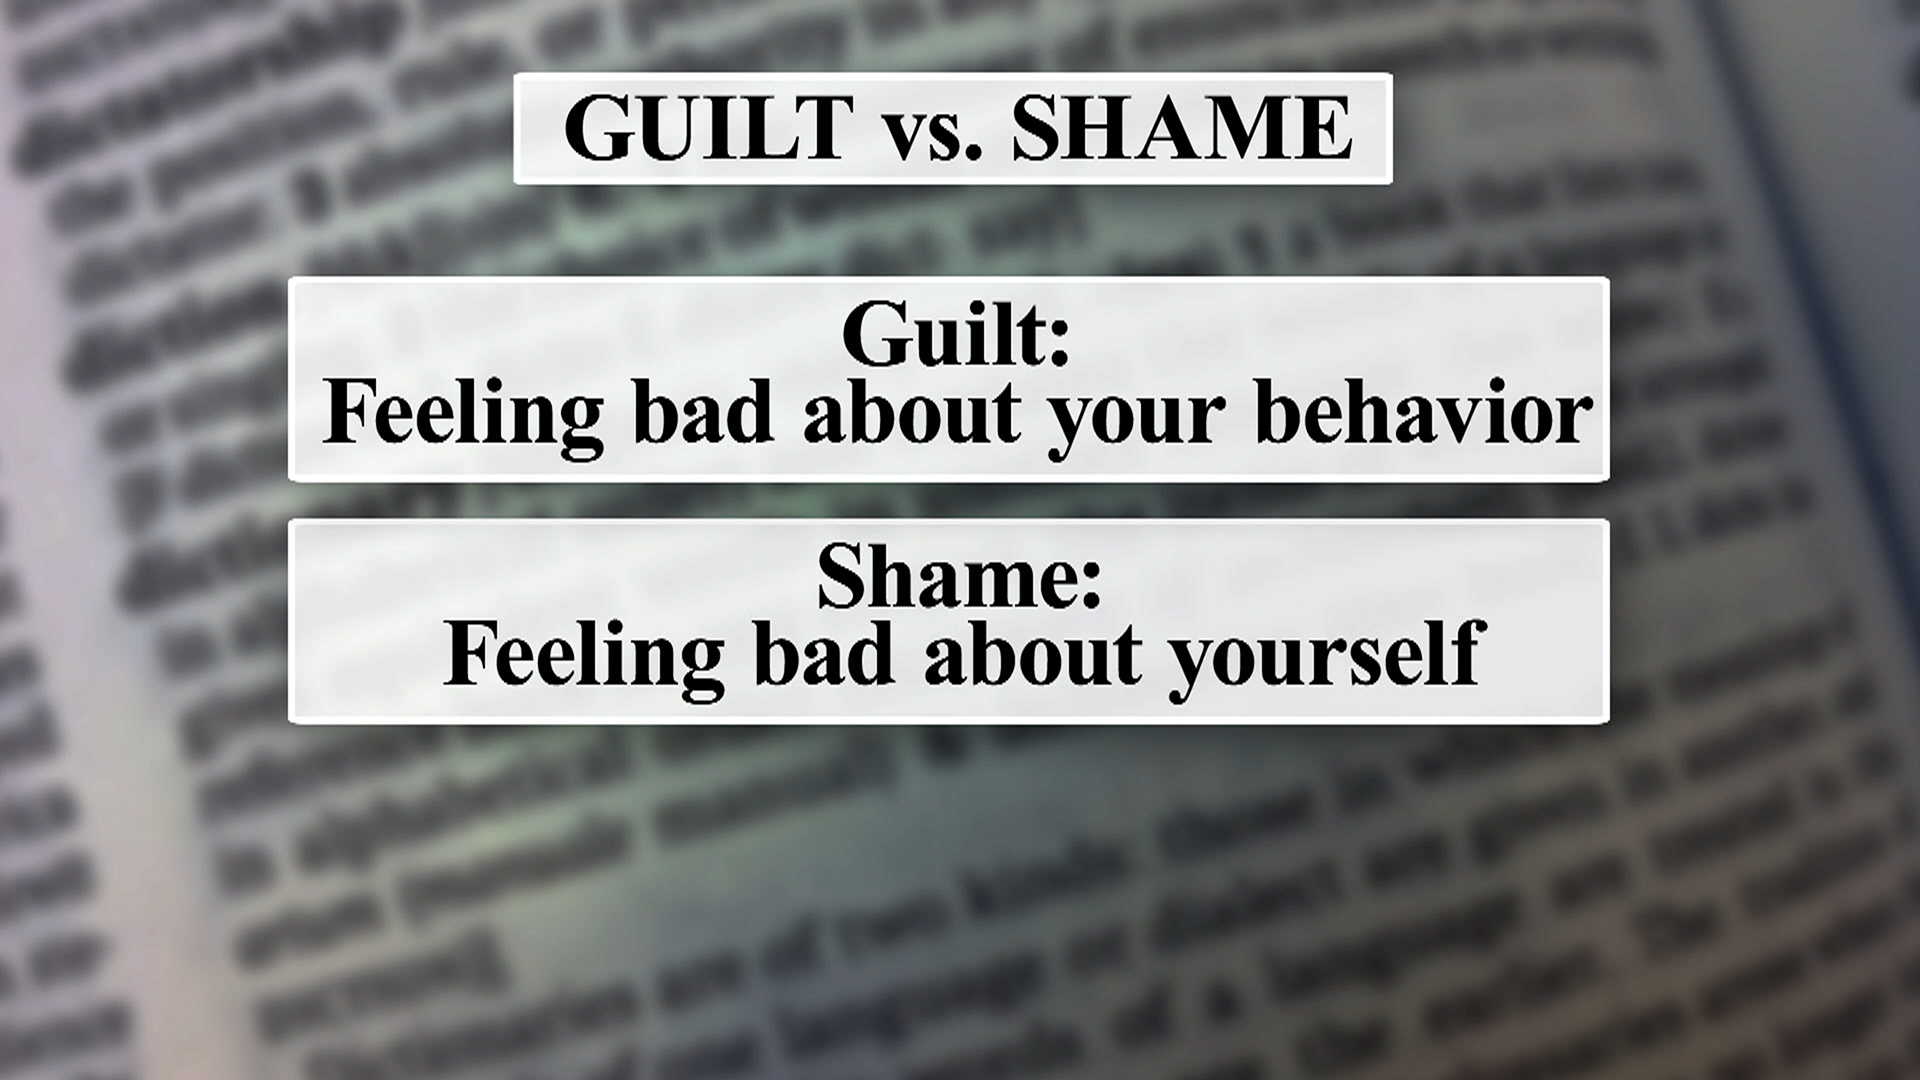 guilt and shame in who you It's amazing how quickly guilt can kick in for the smallest, most meaningless things in our lives guilt is an emotional warning sign that most people learn.